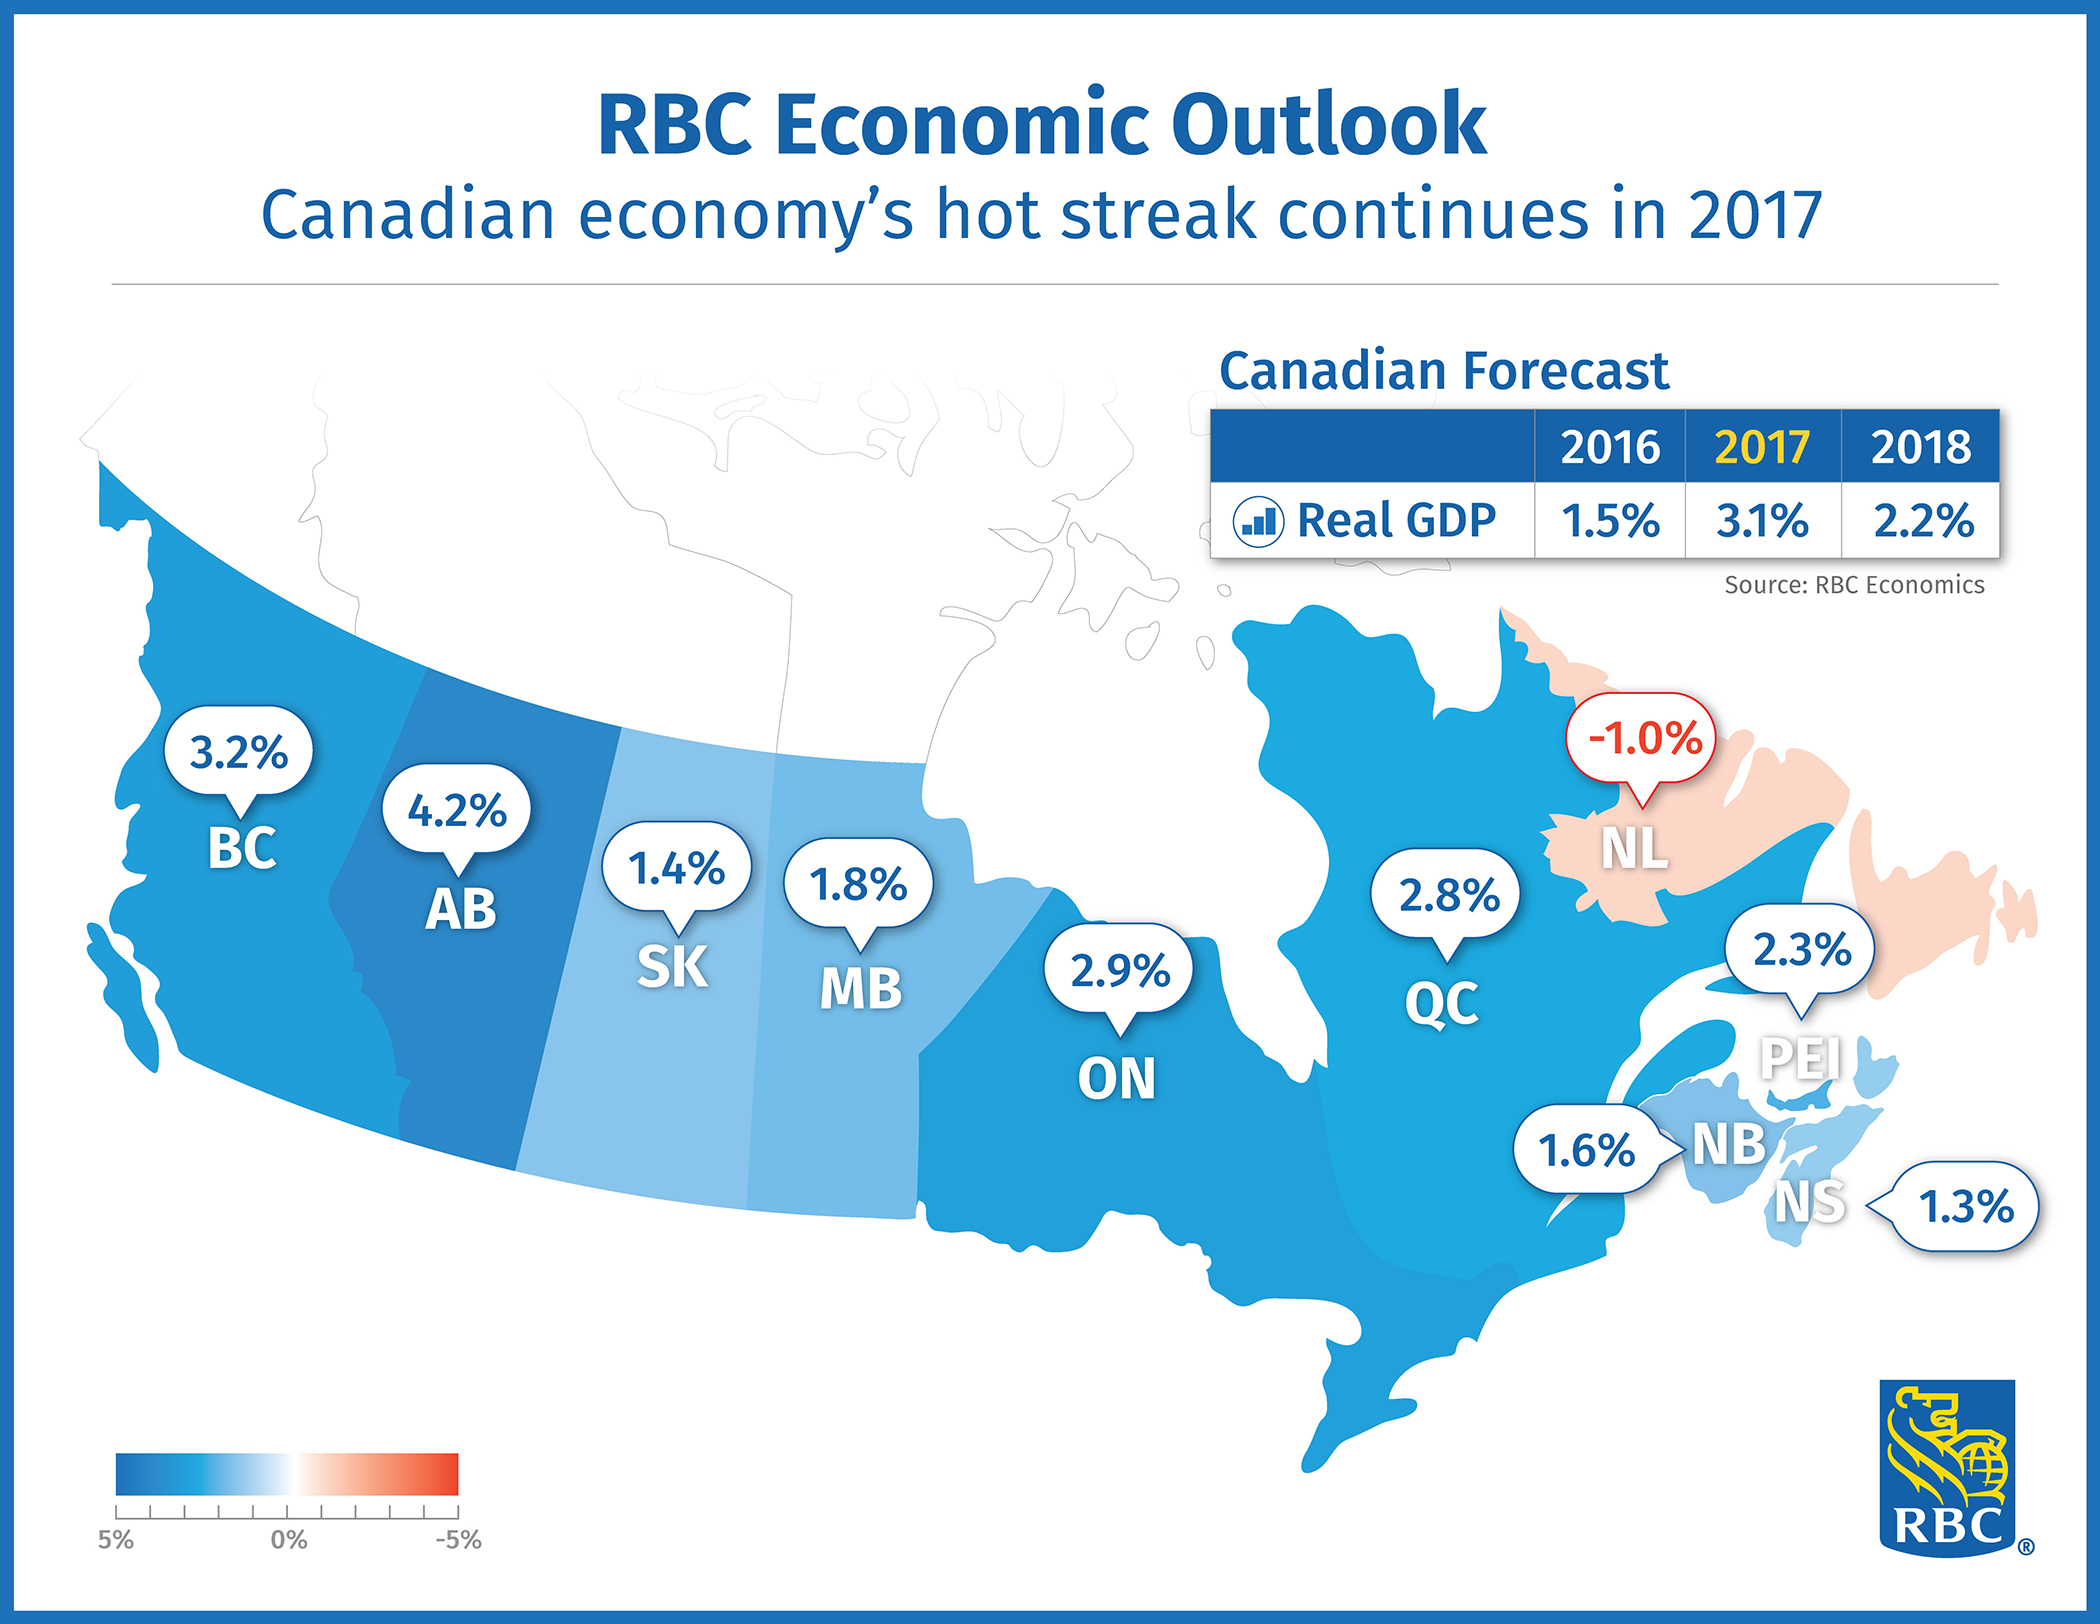 Canadian economy's hot streak continues in 2017